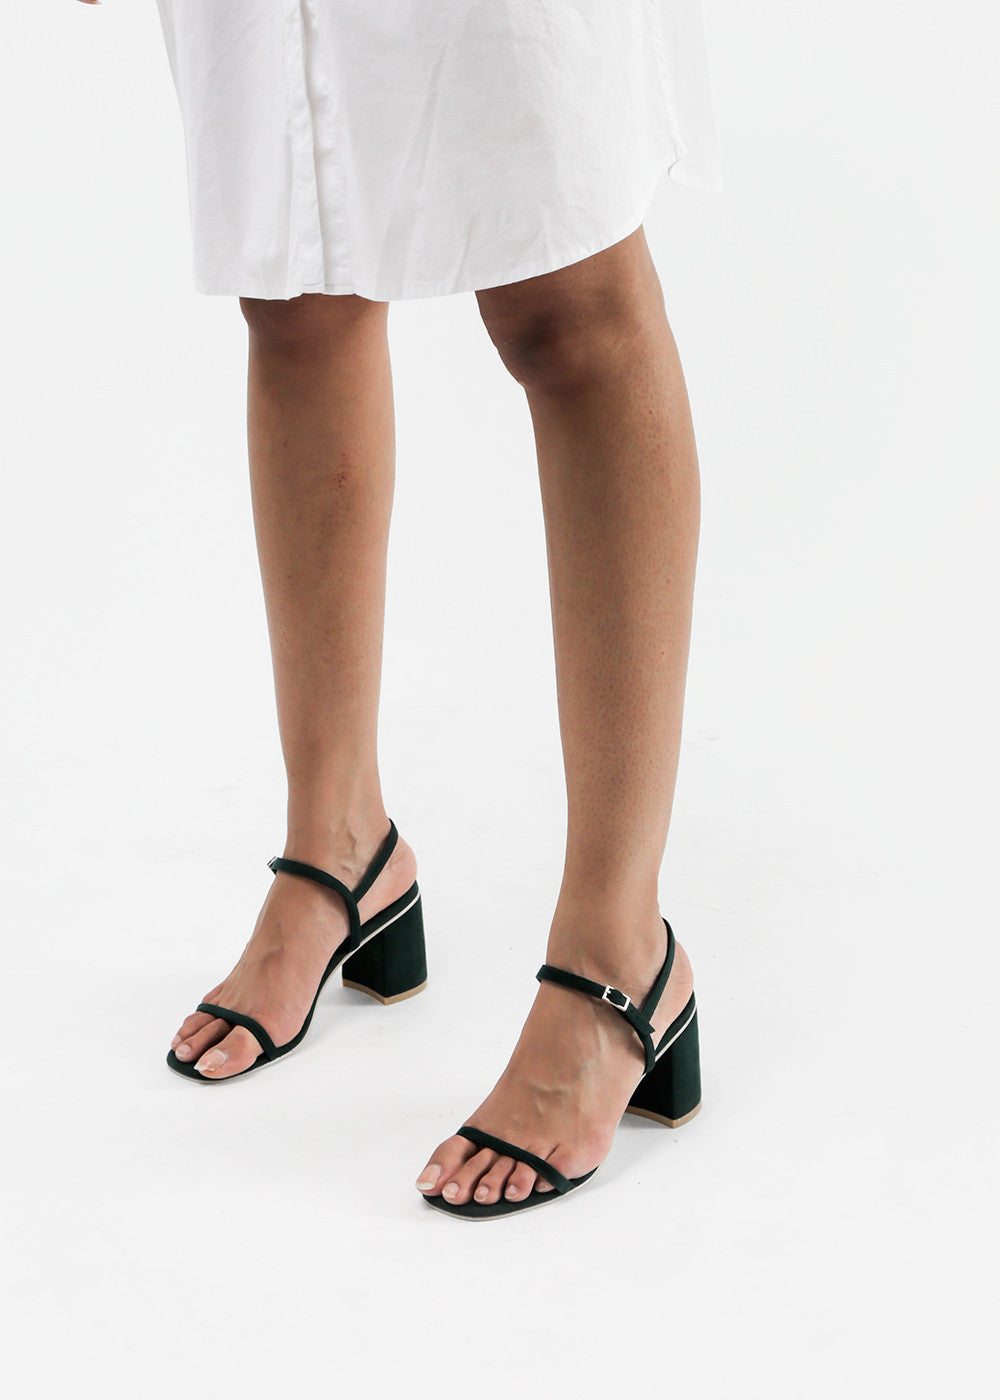 Simple Sandal in Chlor